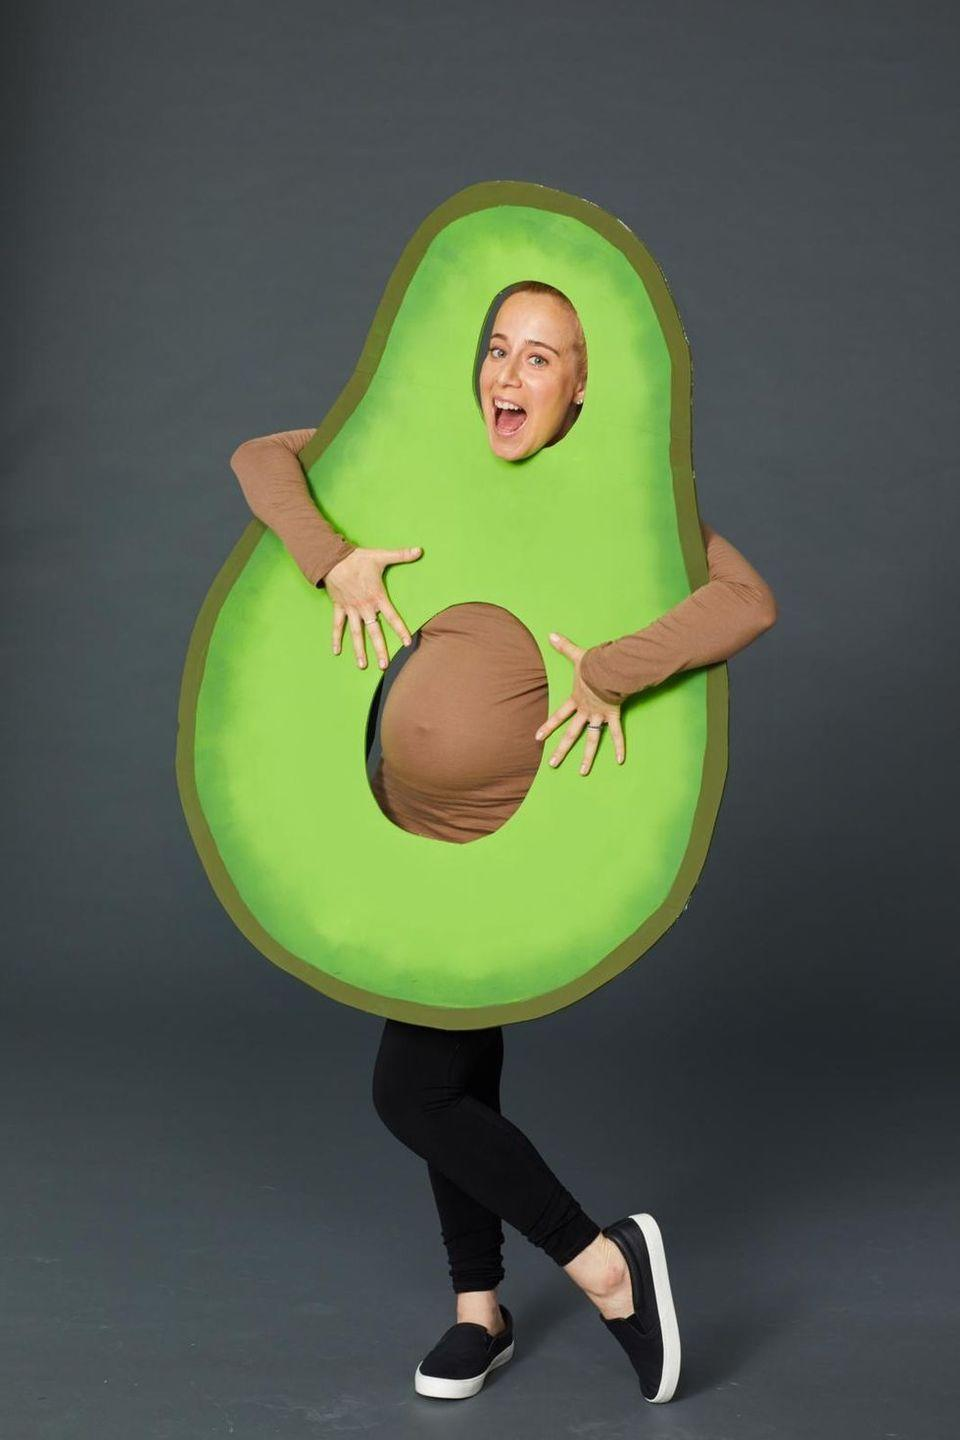 """<p>This DIY costume is so easy to make: trace the shape of your belly on a large piece of presentation board and then cut out a hole for the """"pit."""" Then, paint it with different shades of green with paint. Attach straps to the back to slide your arms through, and then wear a brown shirt underneath. </p><p>Your partner can then DIY or buy a sliced of bread costume. </p><p><a class=""""link rapid-noclick-resp"""" href=""""https://www.amazon.com/Pure-Look-Stretch-Thermal-Underwear/dp/B08XJX3NM3?tag=syn-yahoo-20&ascsubtag=%5Bartid%7C10070.g.28589425%5Bsrc%7Cyahoo-us"""" rel=""""nofollow noopener"""" target=""""_blank"""" data-ylk=""""slk:SHOP BROWN SHIRT"""">SHOP BROWN SHIRT</a></p><p><a class=""""link rapid-noclick-resp"""" href=""""https://www.amazon.com/Best-Thing-Since-Sliced-Bread/dp/B08GDP4TTF?tag=syn-yahoo-20&ascsubtag=%5Bartid%7C10070.g.28589425%5Bsrc%7Cyahoo-us"""" rel=""""nofollow noopener"""" target=""""_blank"""" data-ylk=""""slk:SHOP BREAD COSTUME"""">SHOP BREAD COSTUME</a></p>"""